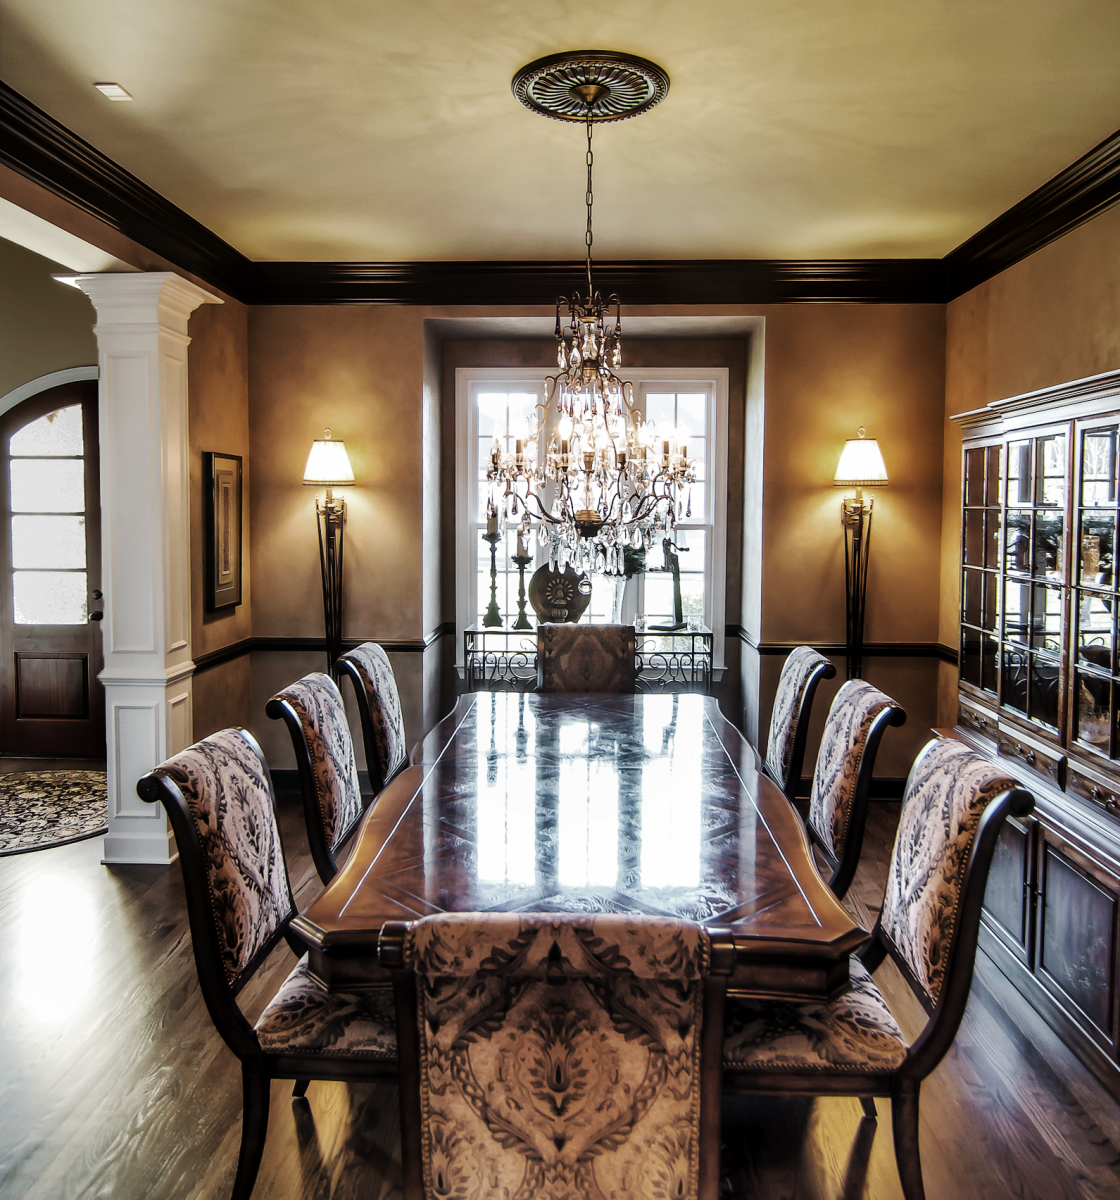 See the room's striking transformation in our Before and Afters gallery.